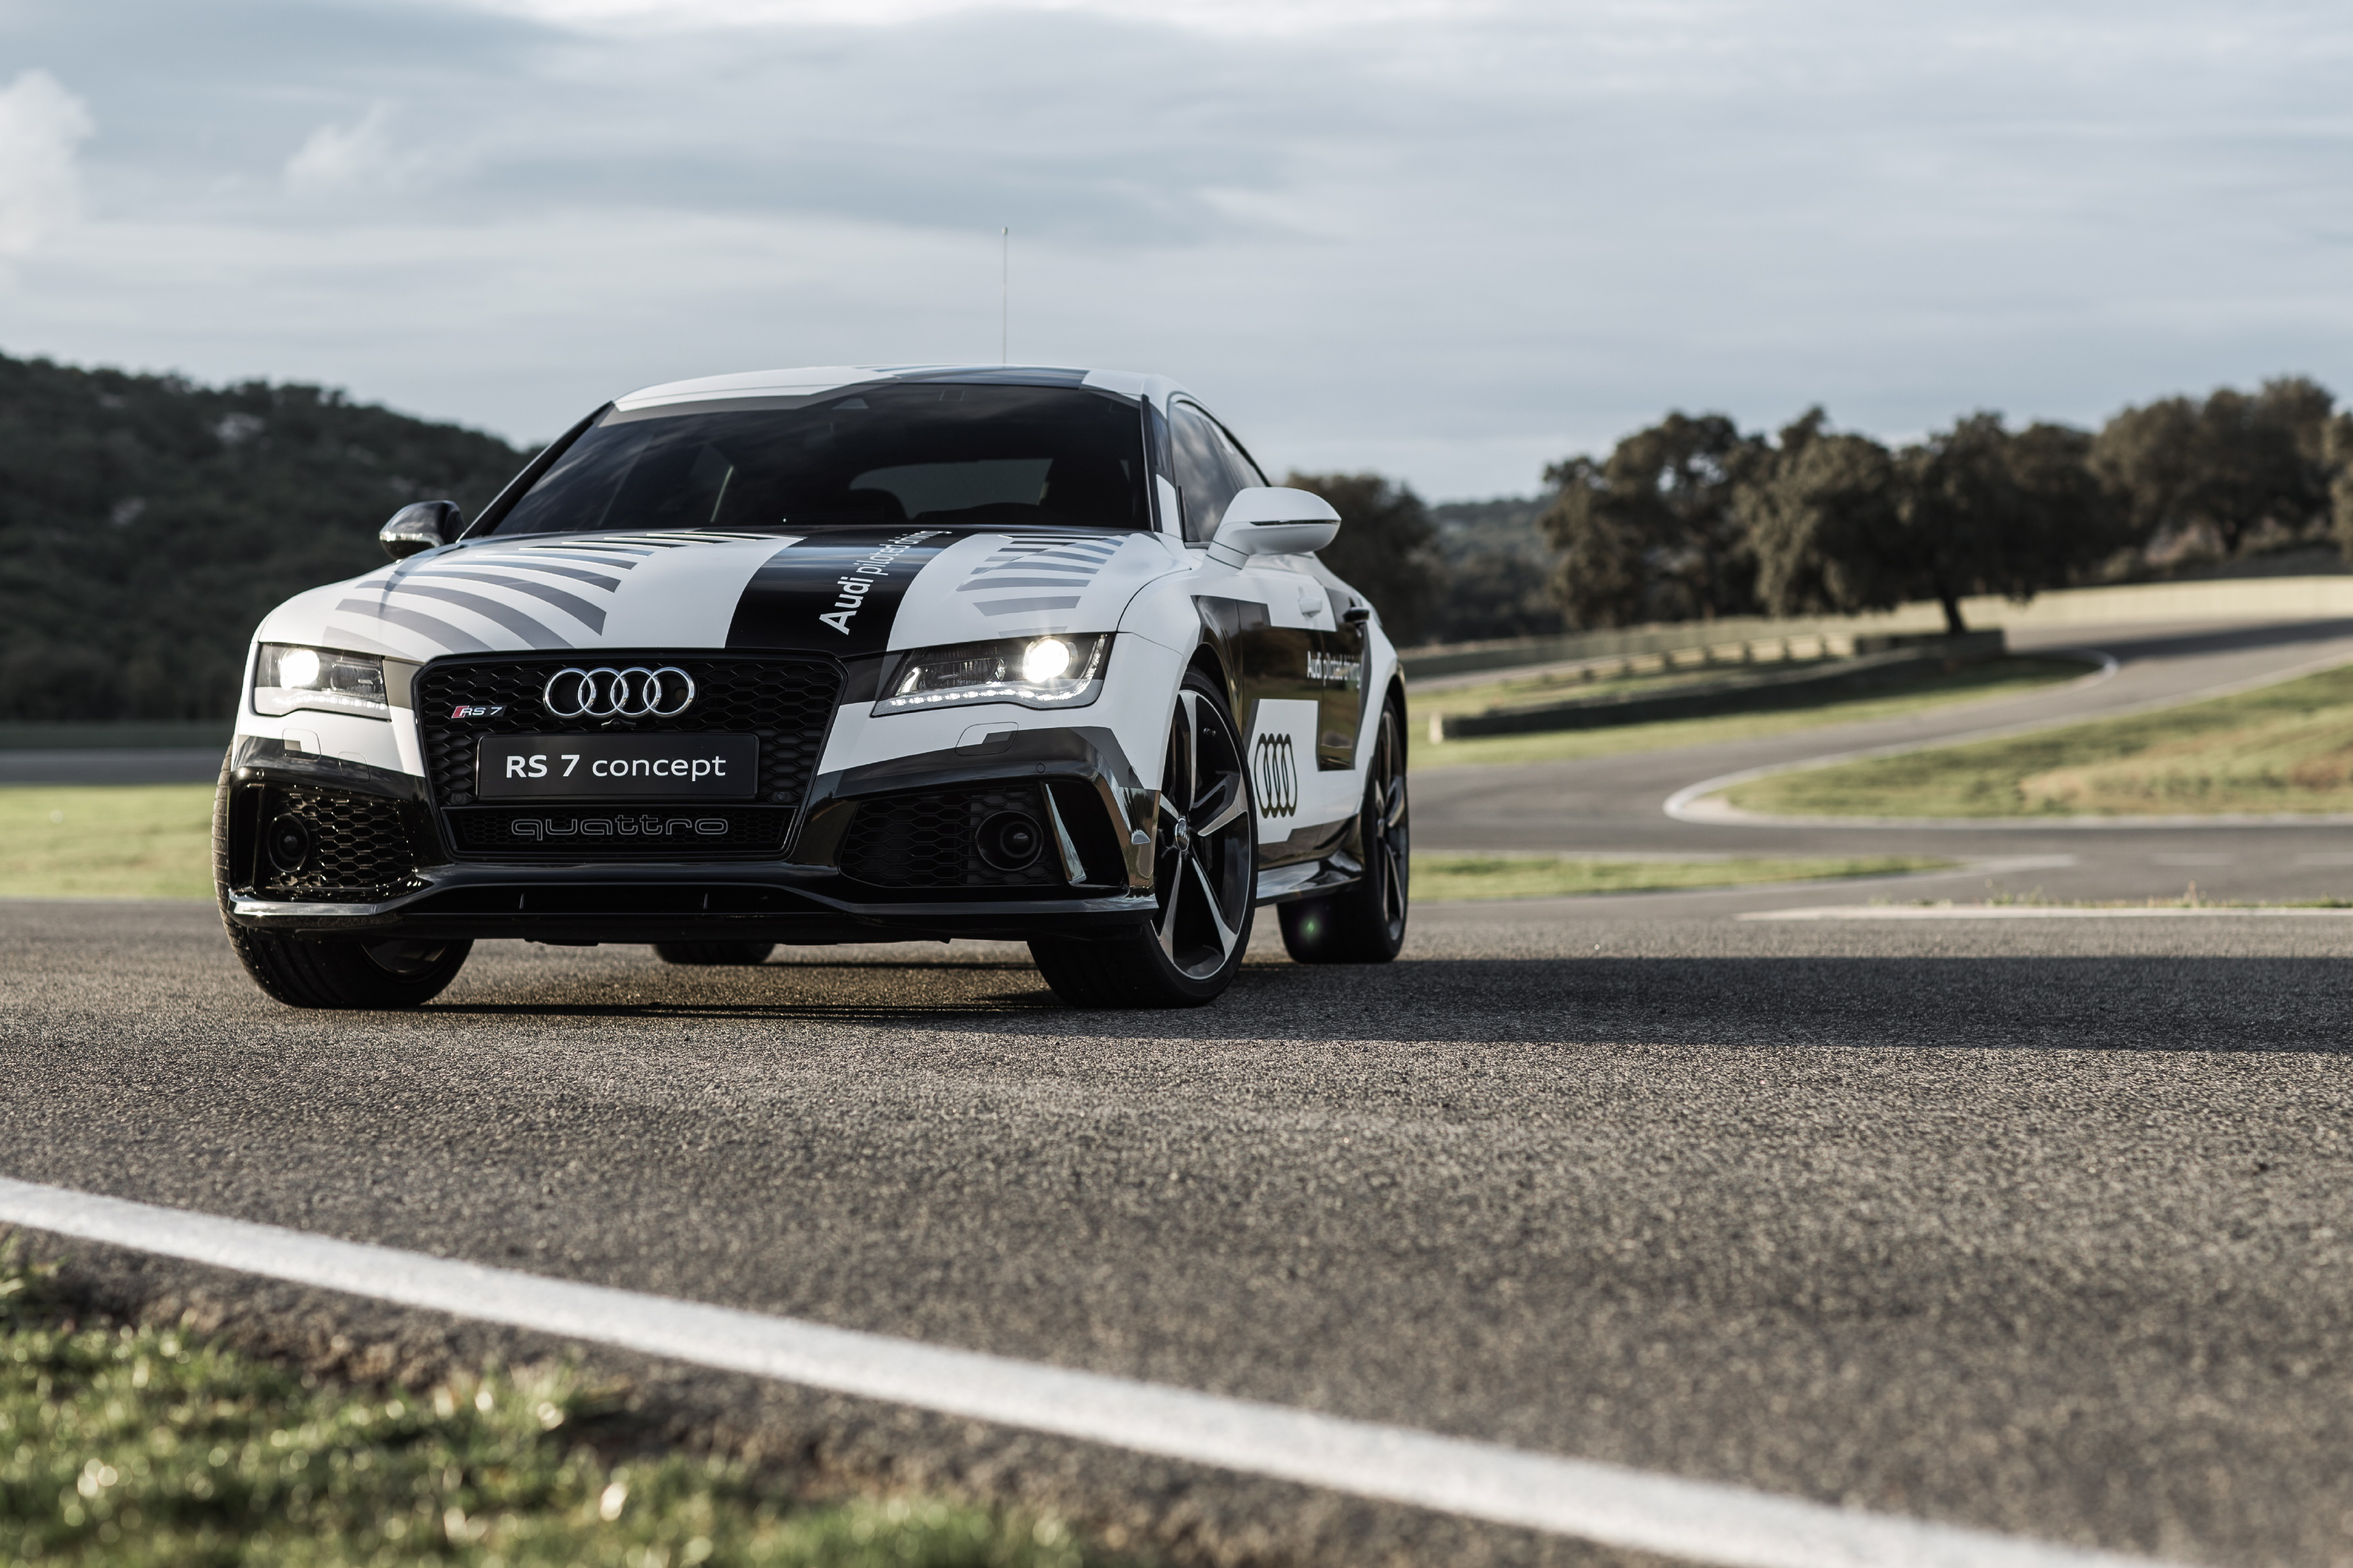 Say Hello To Bobby Audis SelfAware Car Of The Future - Audi piloted driving